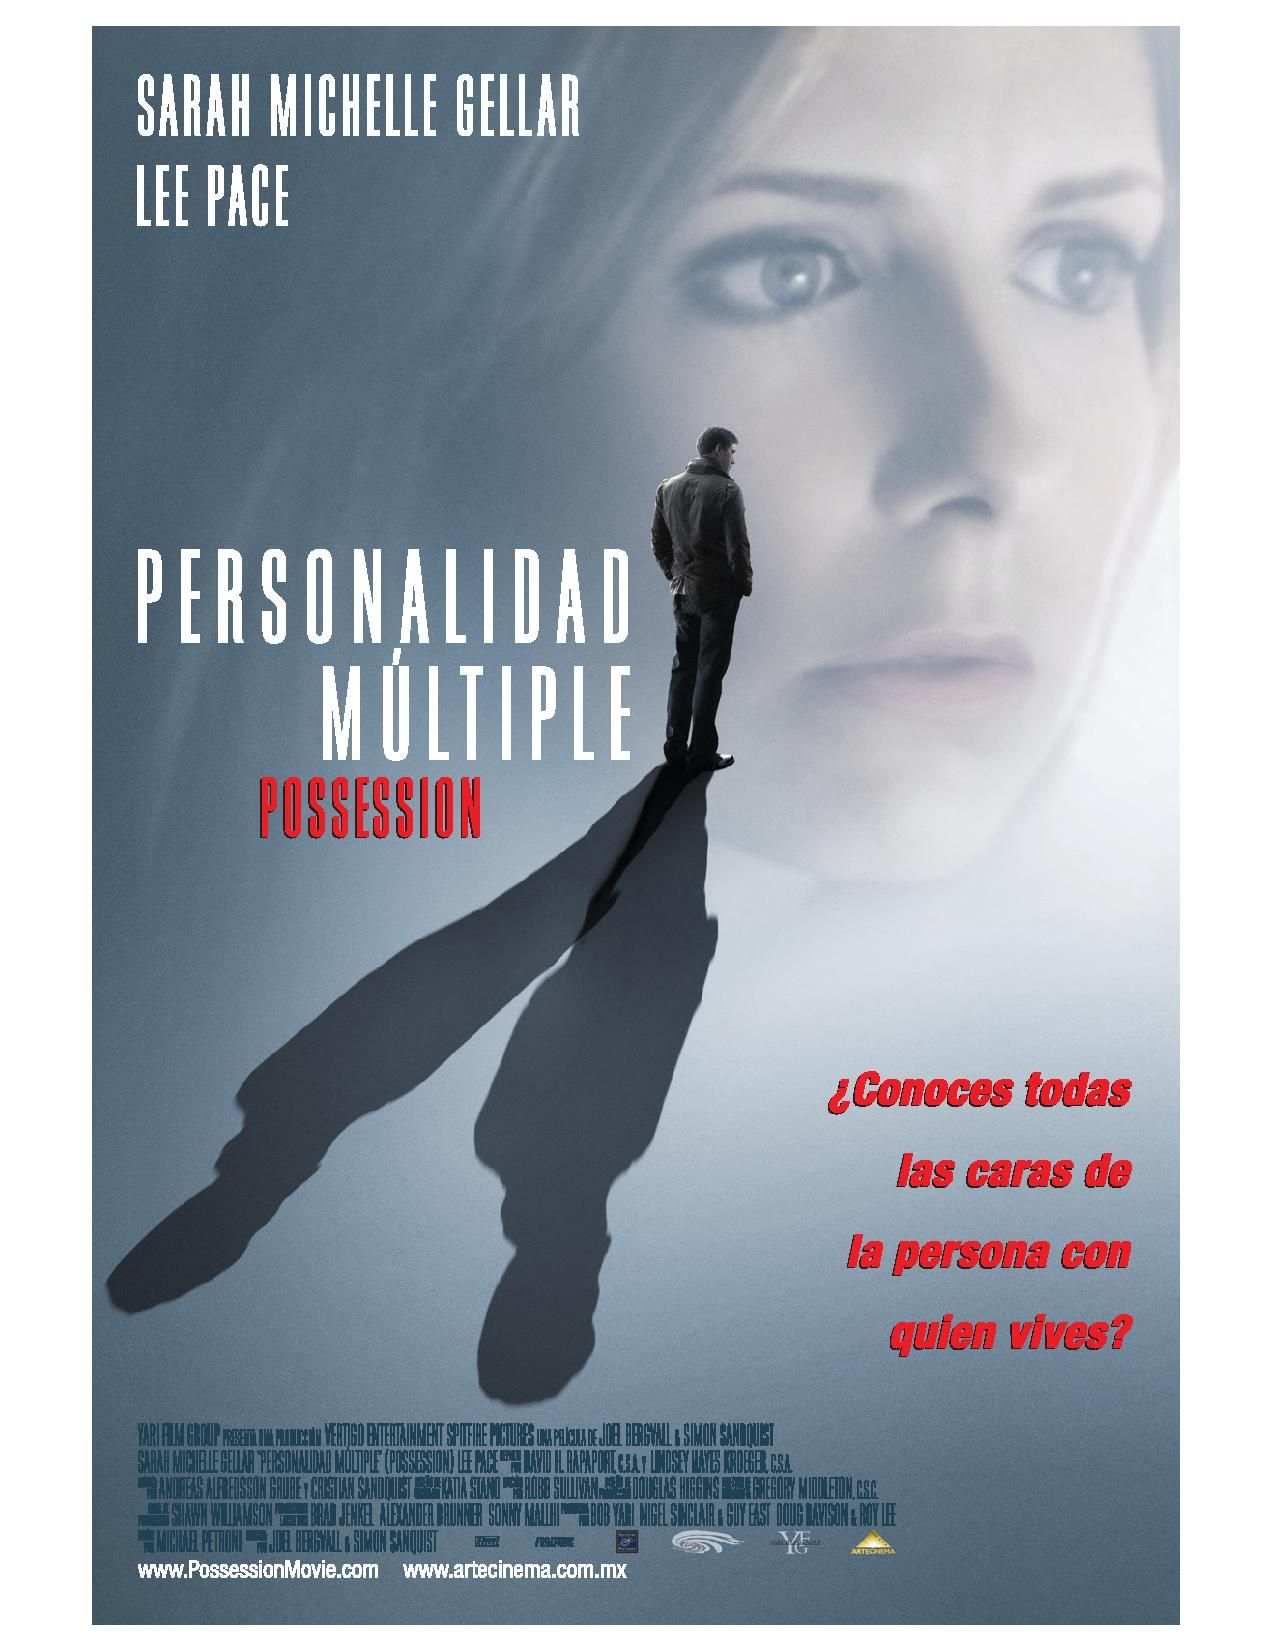 Personalidad Multiple Possession Assasins Creed Movie Posters Movies